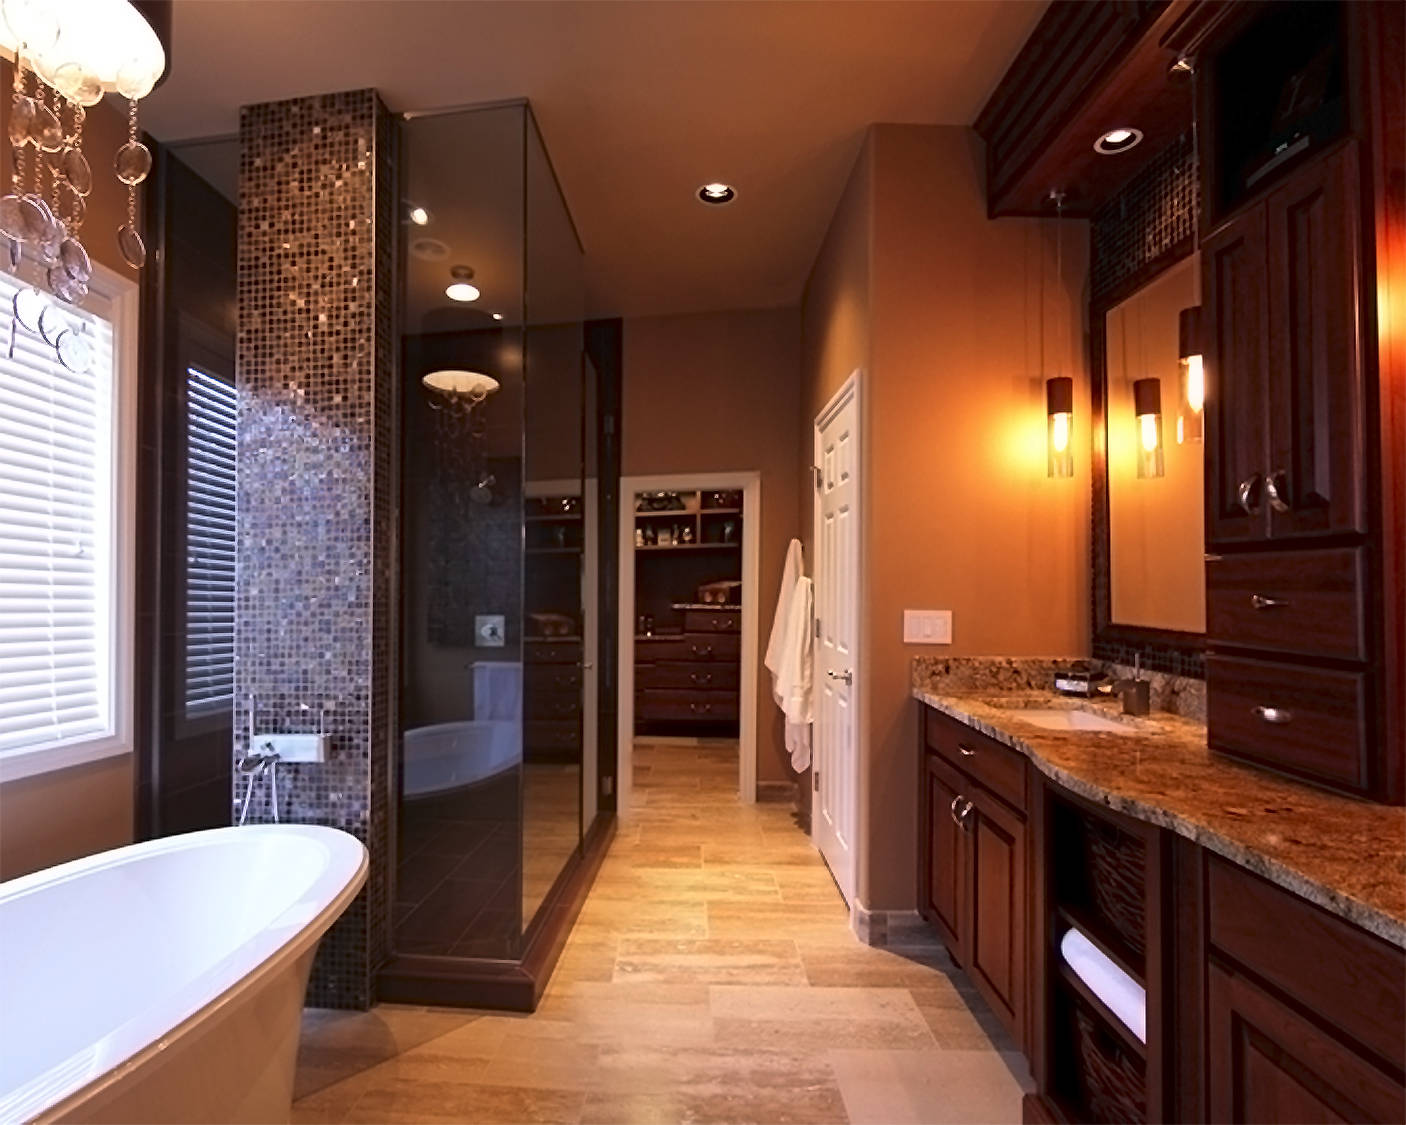 Bathroom Remodeling Pictures And Ideas Of Selin Construction Bathroom Remodel